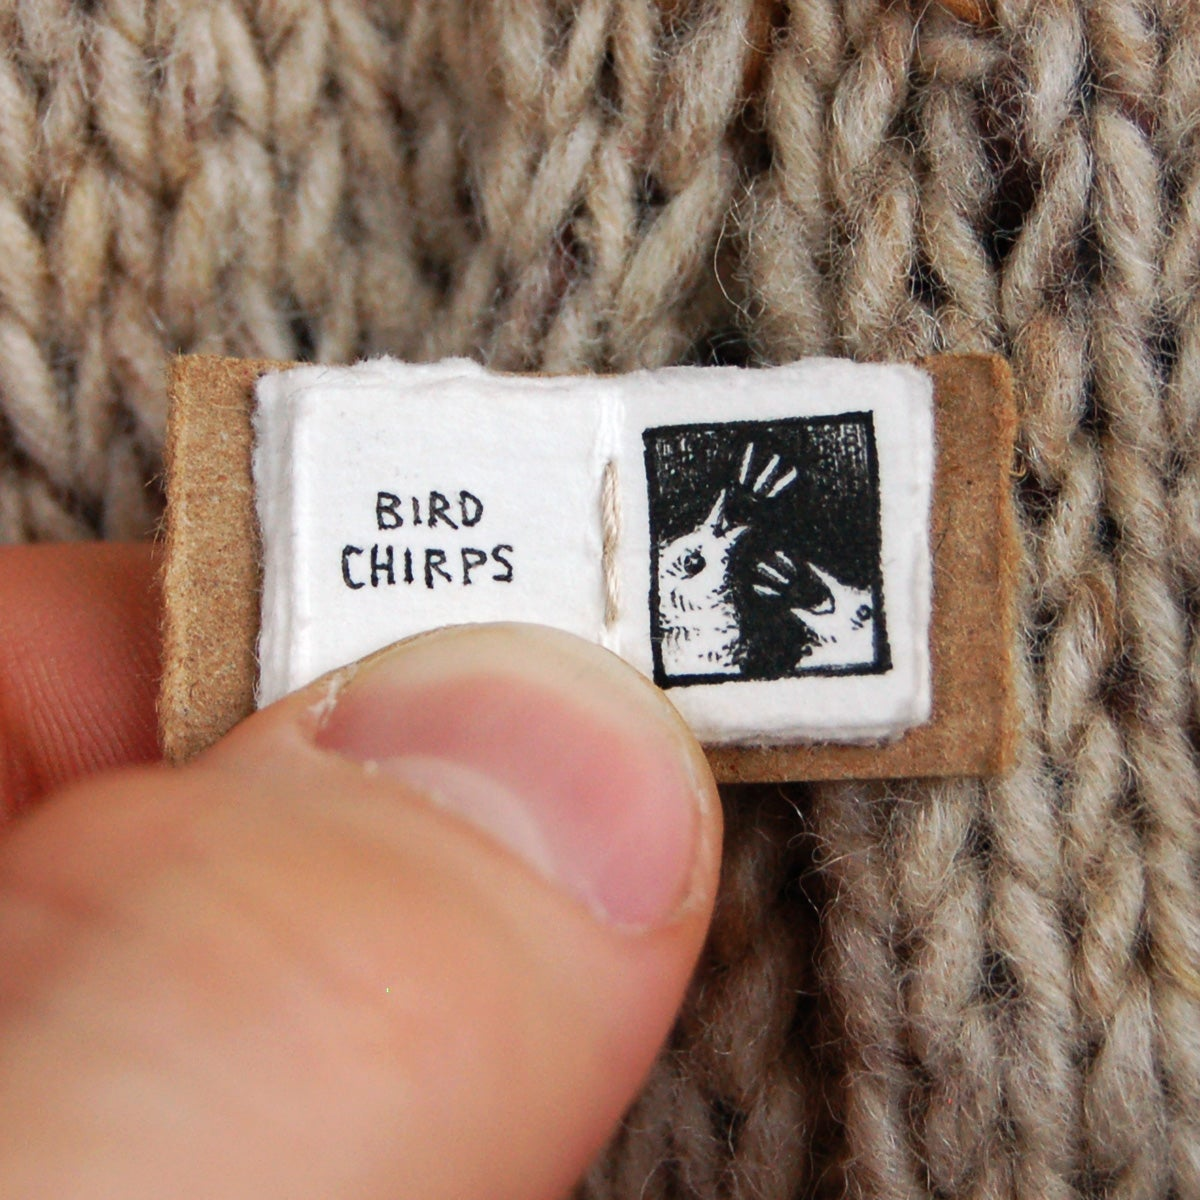 Pin-Sized Book Reminds Us of Life's Little Pleasures